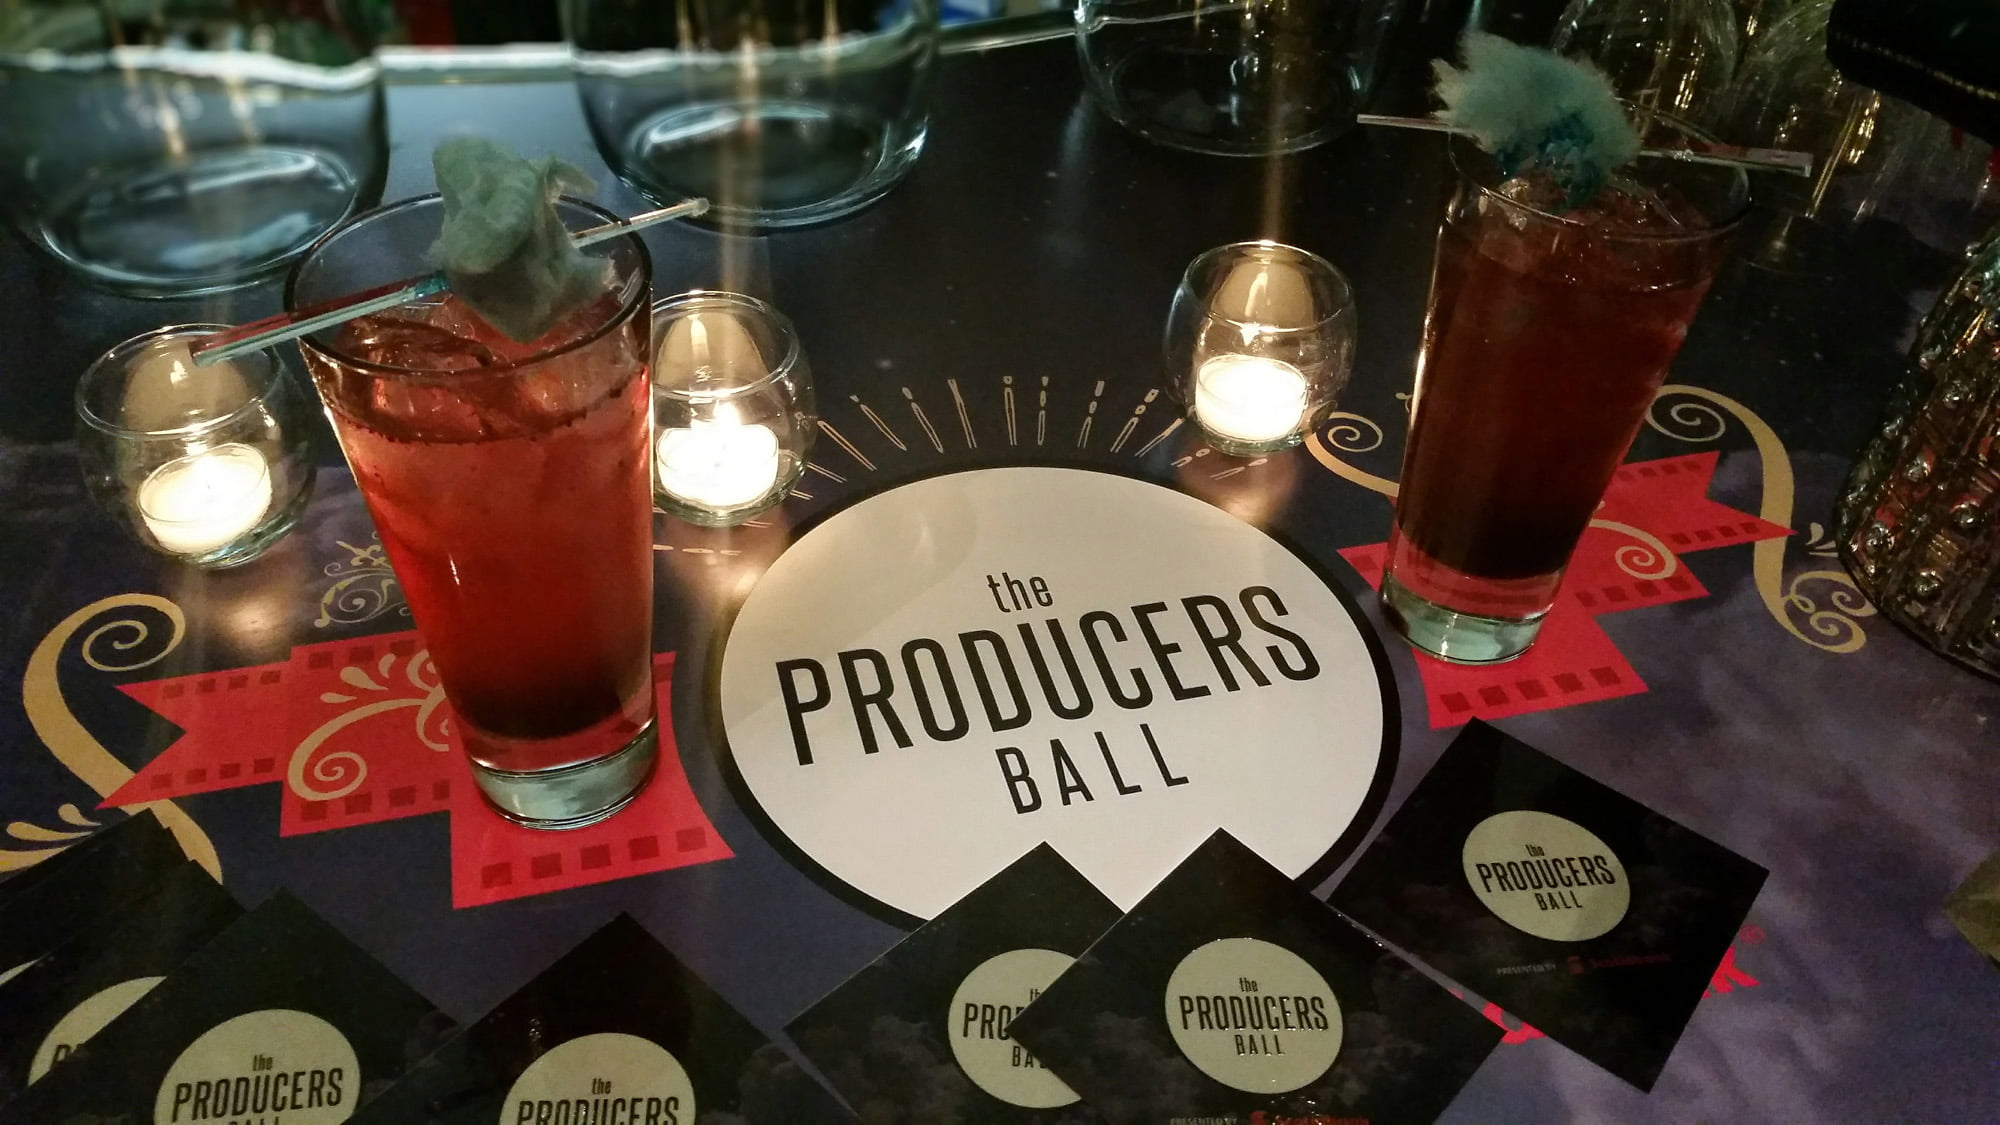 The Producers Ball